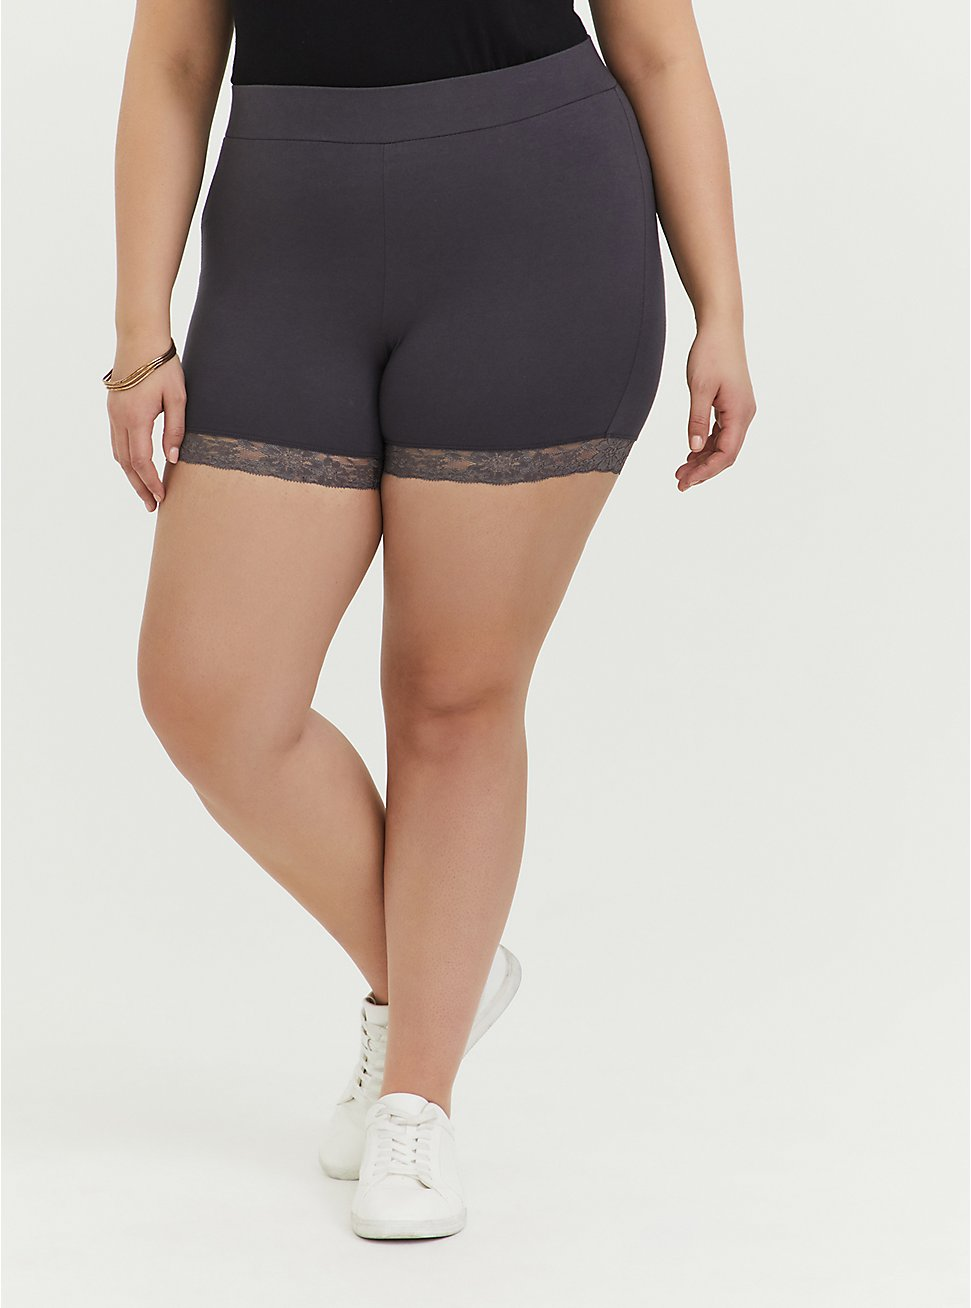 Dark Slate Grey Lace Trim Bike Short, GREY, hi-res